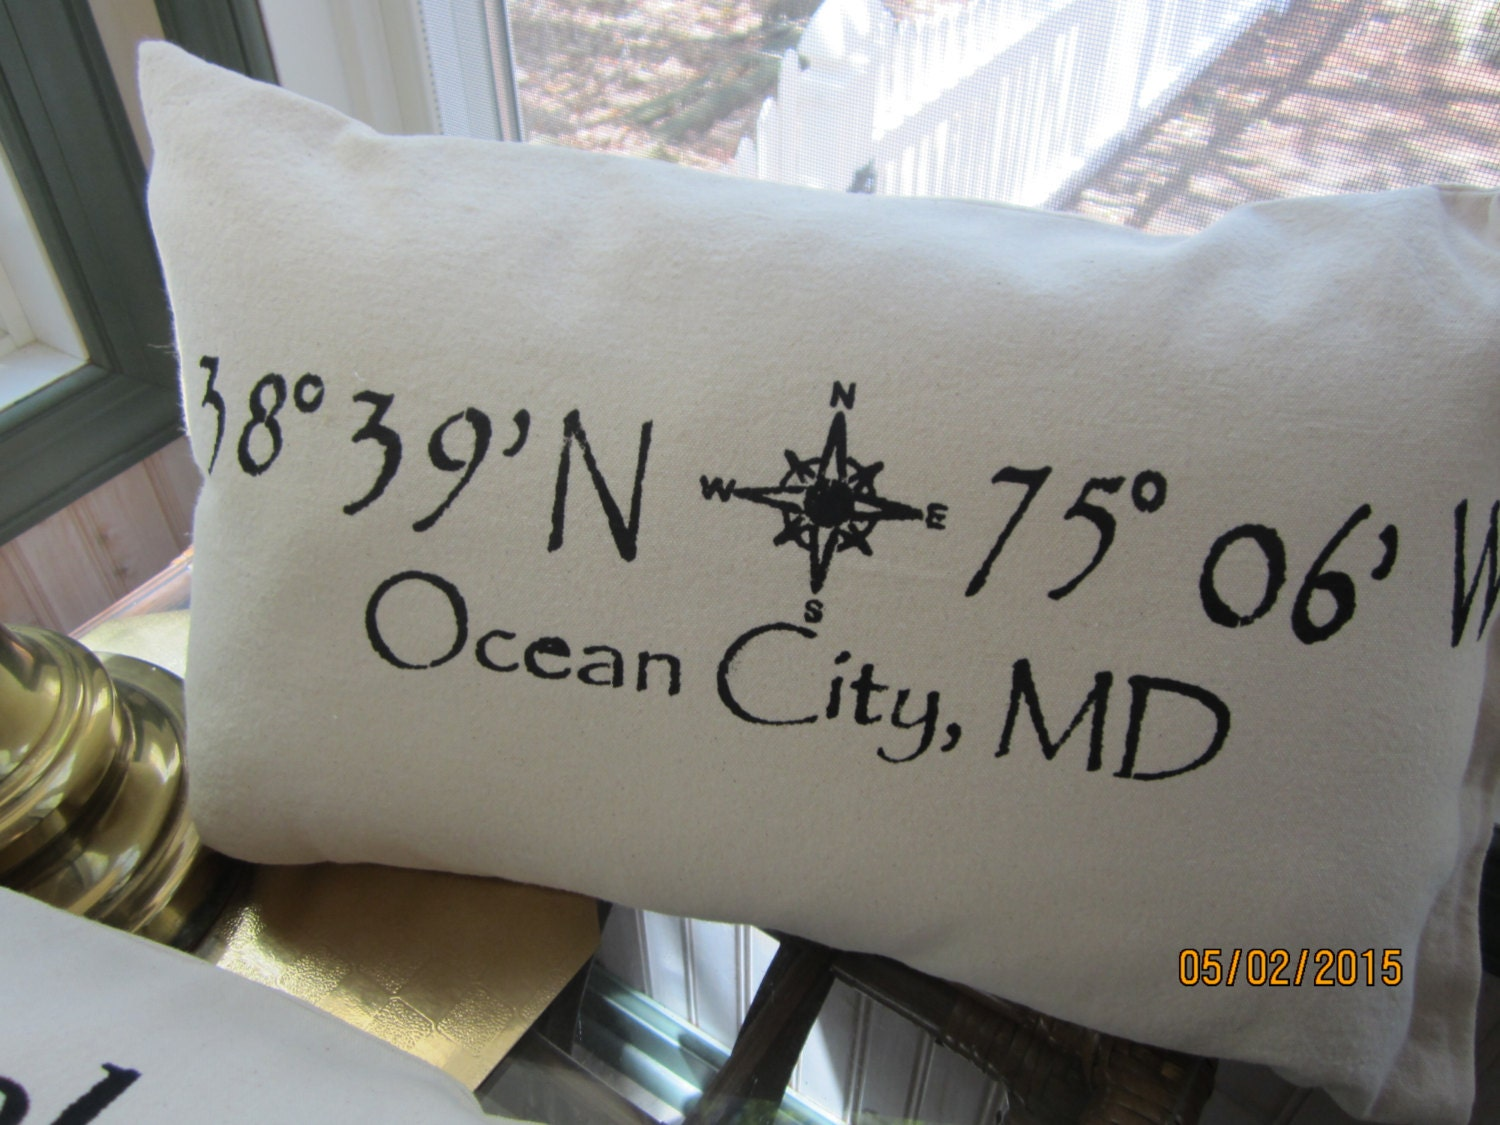 Ocean City Maryland themed pillow with map coordinates 12 x 20